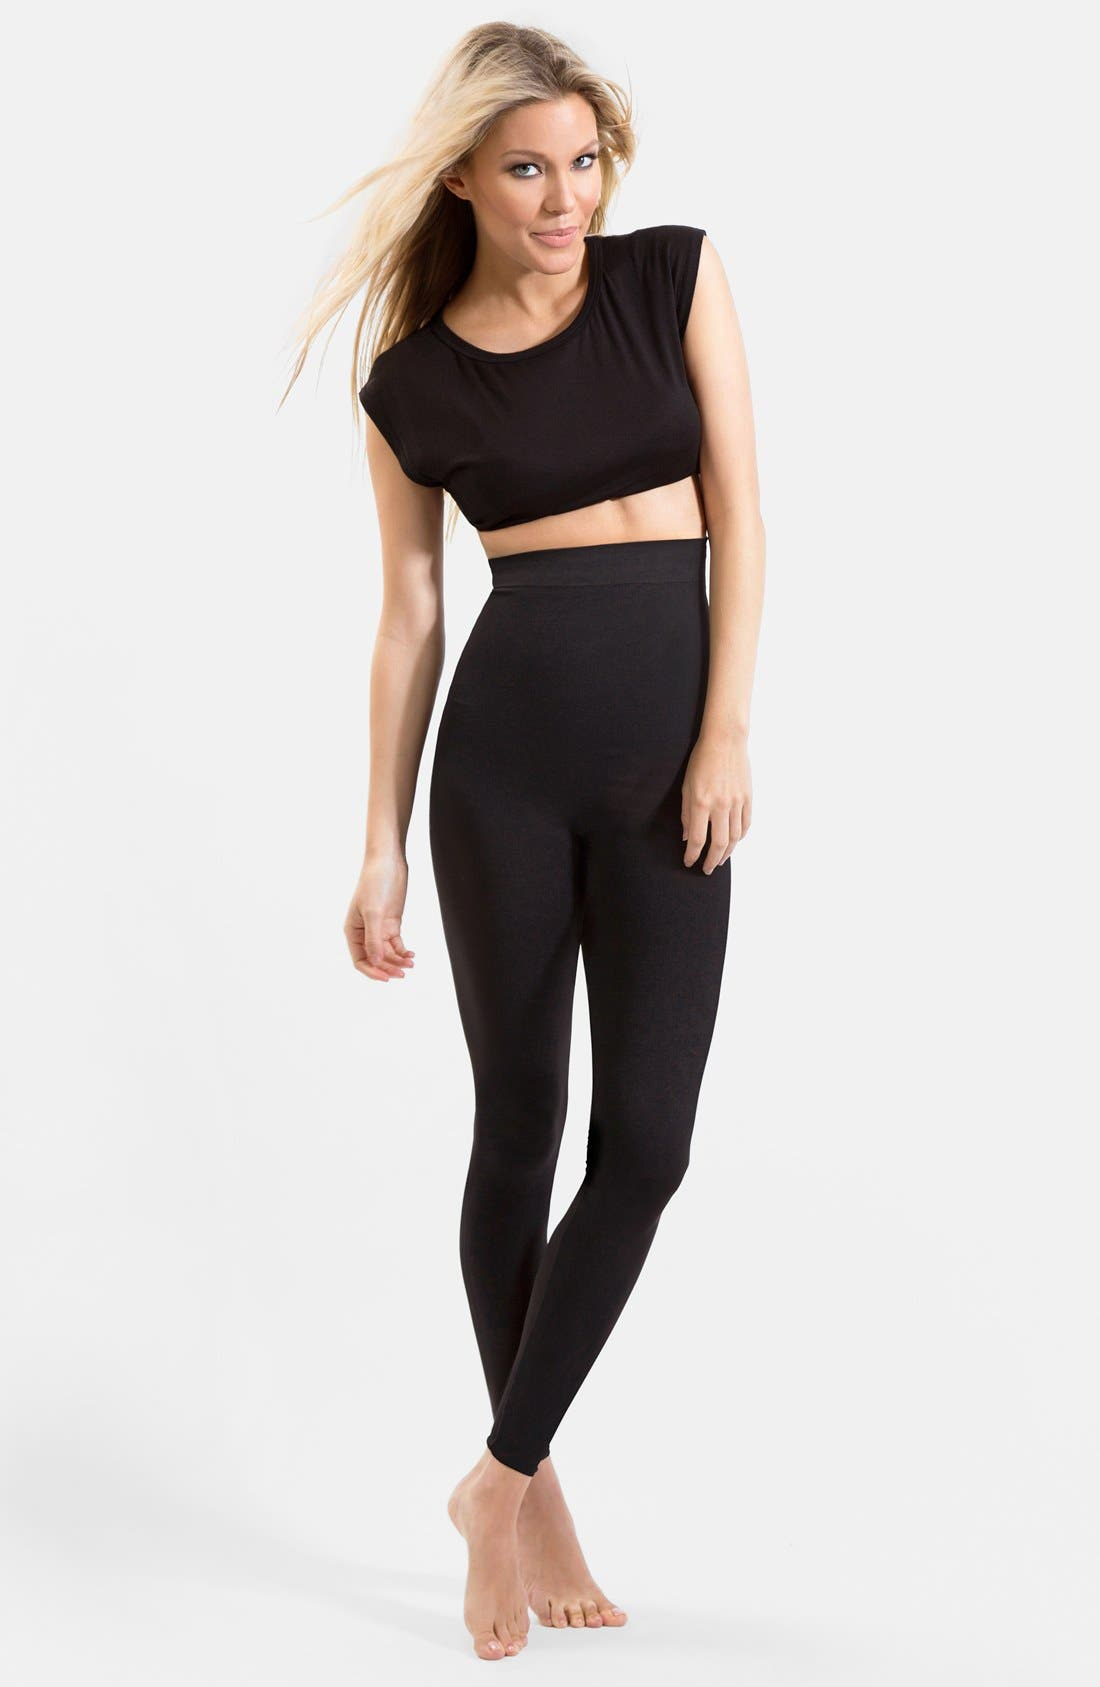 'High Performance' High Waisted Maternity/Postpartum Support Leggings,                             Alternate thumbnail 2, color,                             Black